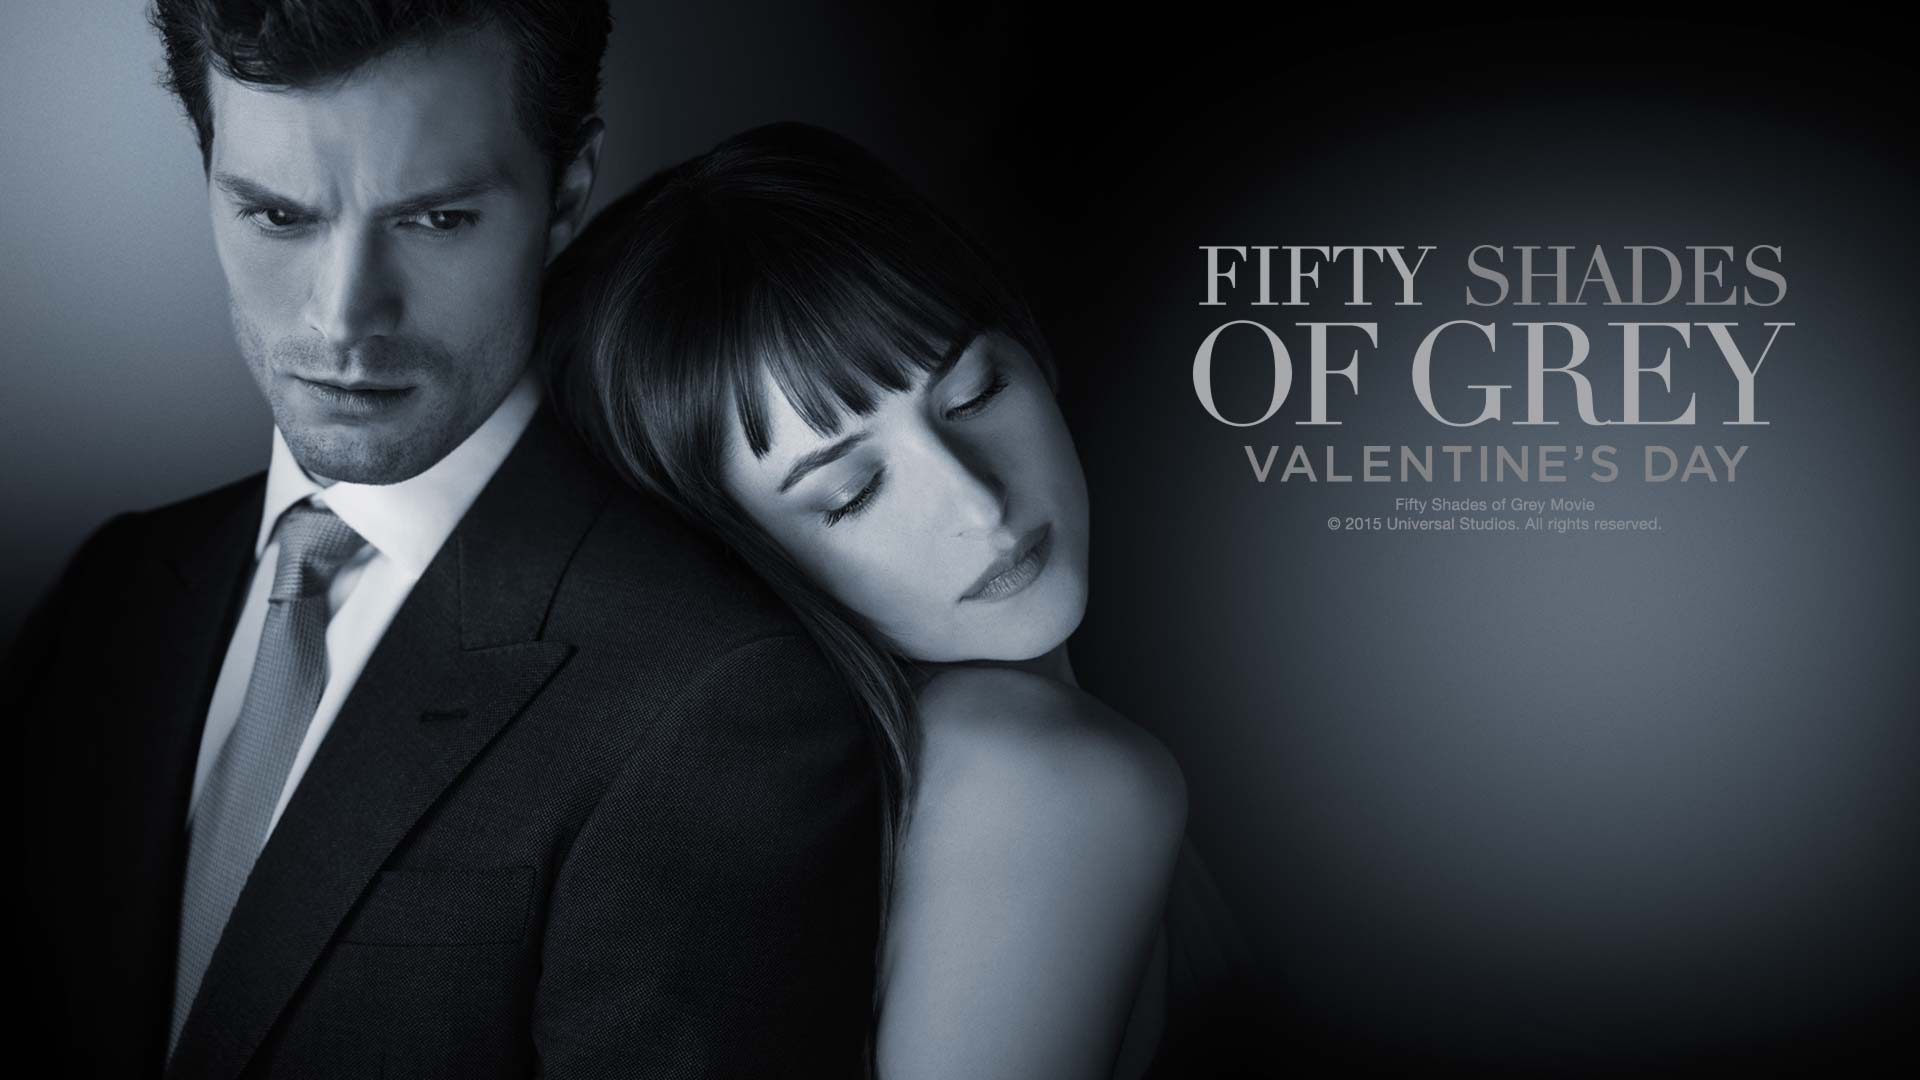 Fifty Shades of Grey wallpaper 1